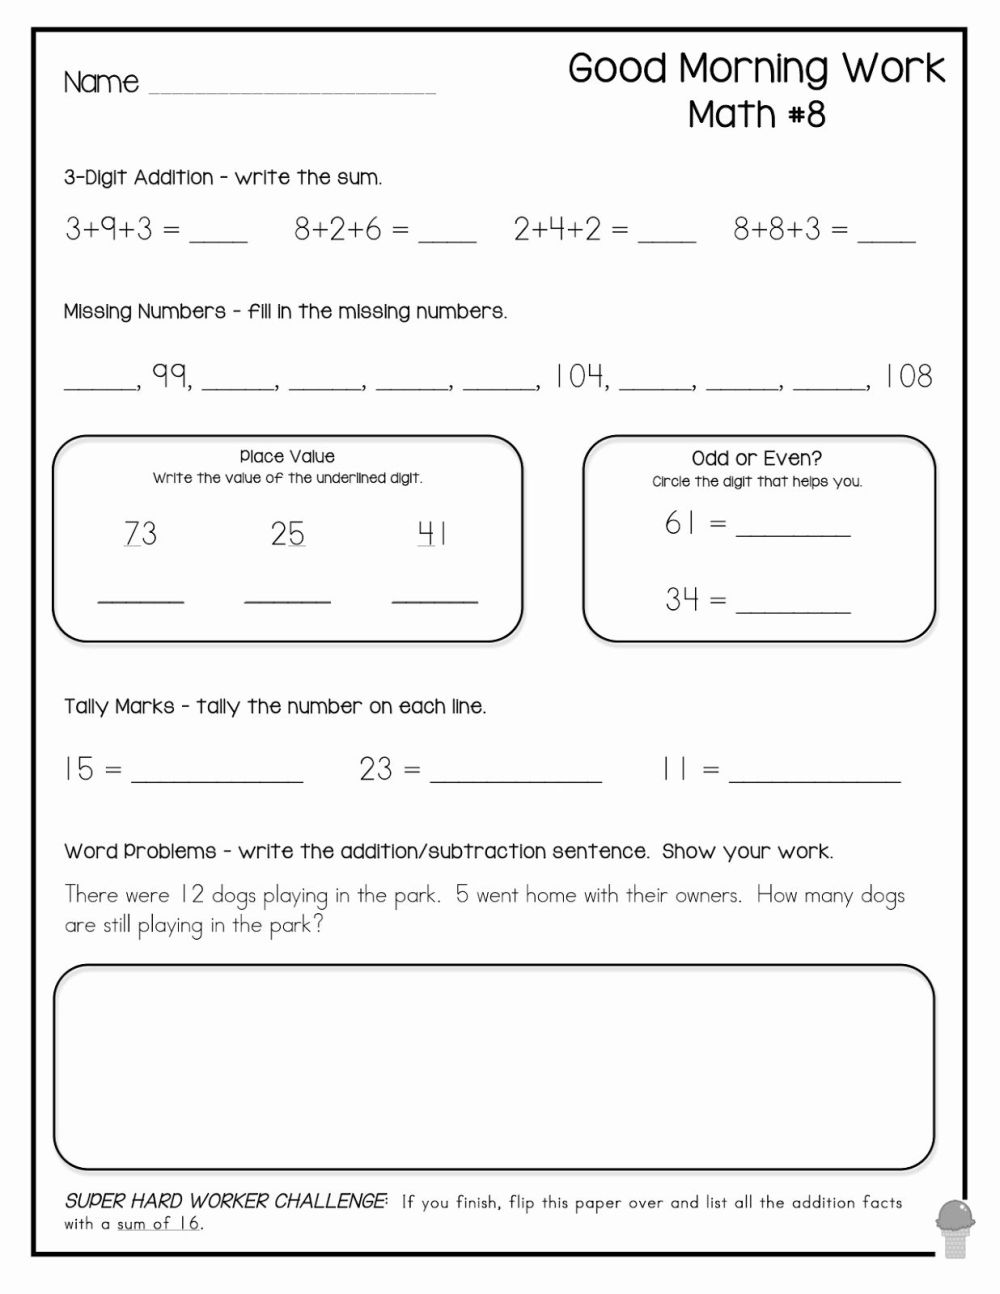 medium resolution of Printable 3rd To 4th Grade Summer Worksheets   Printable Worksheets and  Activities for Teachers